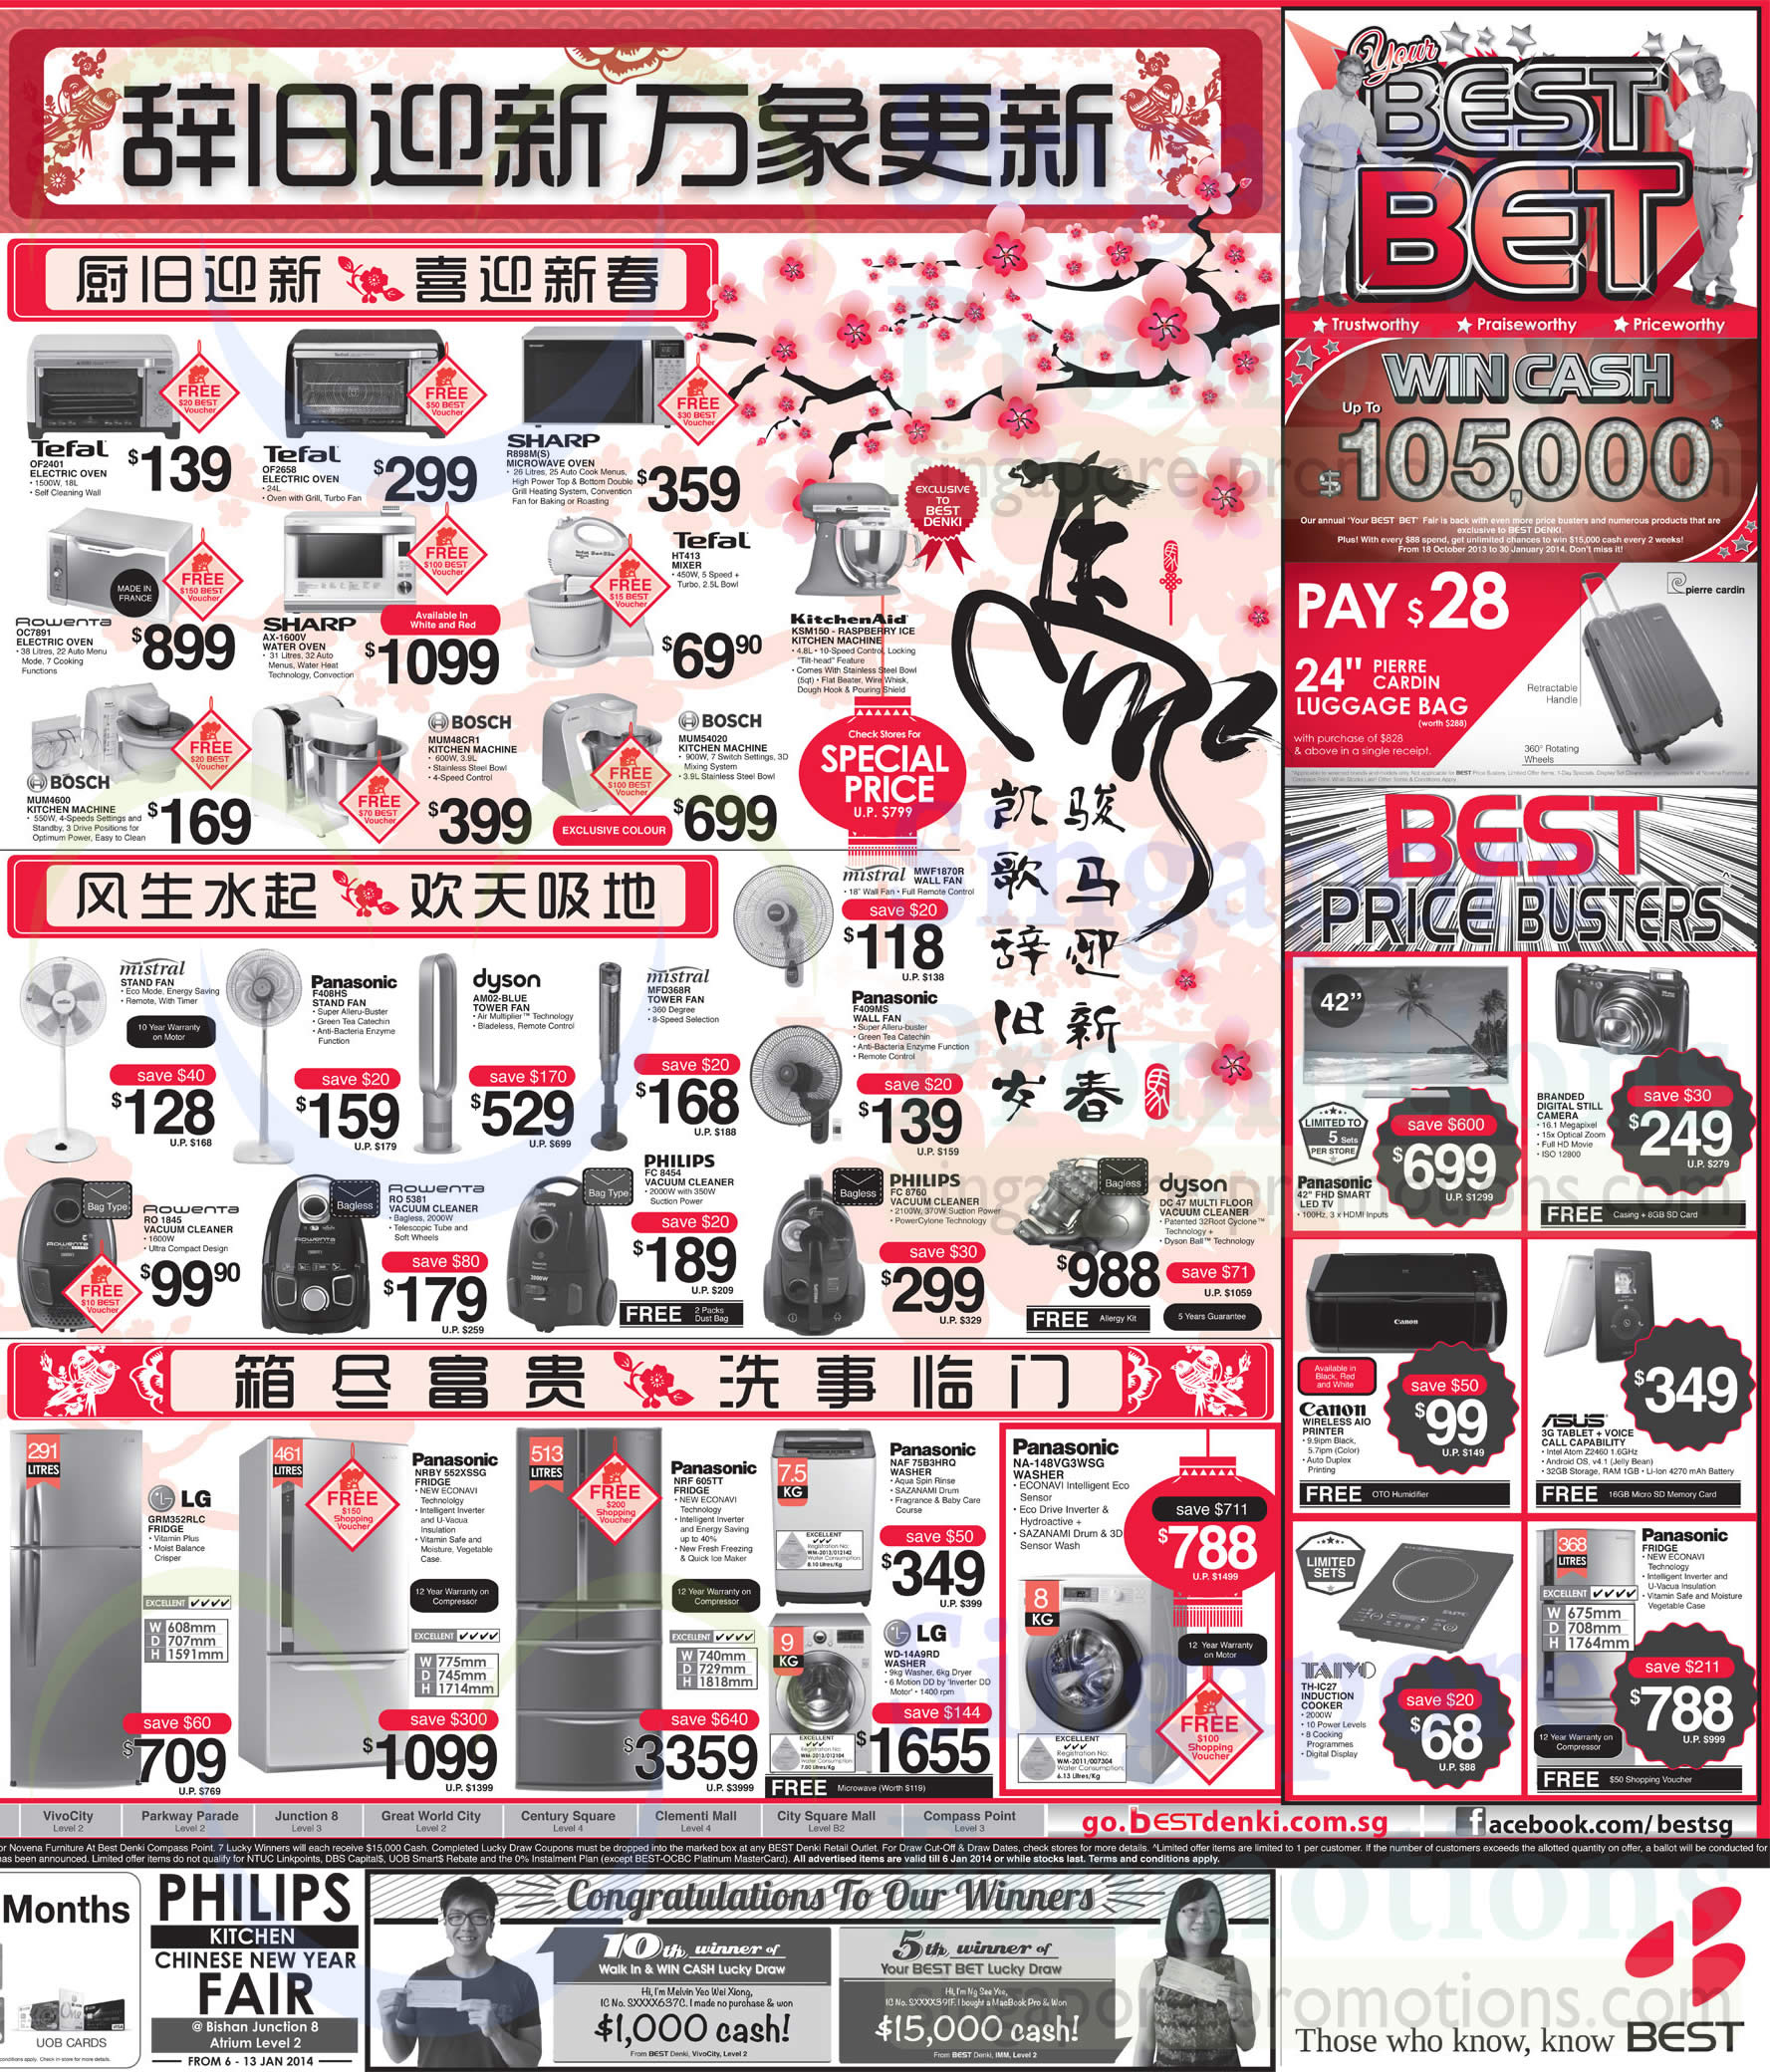 Tefal OF2401 Oven, Tefal OF2658 Oven, Sharp R898MS Oven, Sharp AX-1600V Oven, Rowenta OC7891 Oven, Rowenta RO1845 Vacuum Cleaner, Rowenta RO 5381Vacuum Cleaner, Bosch MUM54020 Kitchen Machine, Bosch MUM48CR1 Kitchen Machine, Bosch MUM4600 Kitchen Machine, KitchenAid KSM150 Kitchen Machine, Mistral MWF1870R Fan, Mistral MFD368R Fan, Panasonic F408HS Fan, Panasonic F409MS Fan, Philips FC8454 Vacuum Cleaner, Philips FC8760 Vacuum Cleaner, Panasonic F409MS Fan, Panasonic NRF605TT Fridge, Panasonic NAF75N3HRQ Washer, Panasonic NRBY552XSSG Fridge, LG GRM352RLC Fridge, Panasonic NA-148VG3WSG Washer, Dyson DC47 Vacuum Cleaner, LG WD14A9RD Washer and Taiyo TH-IC27 Cooker